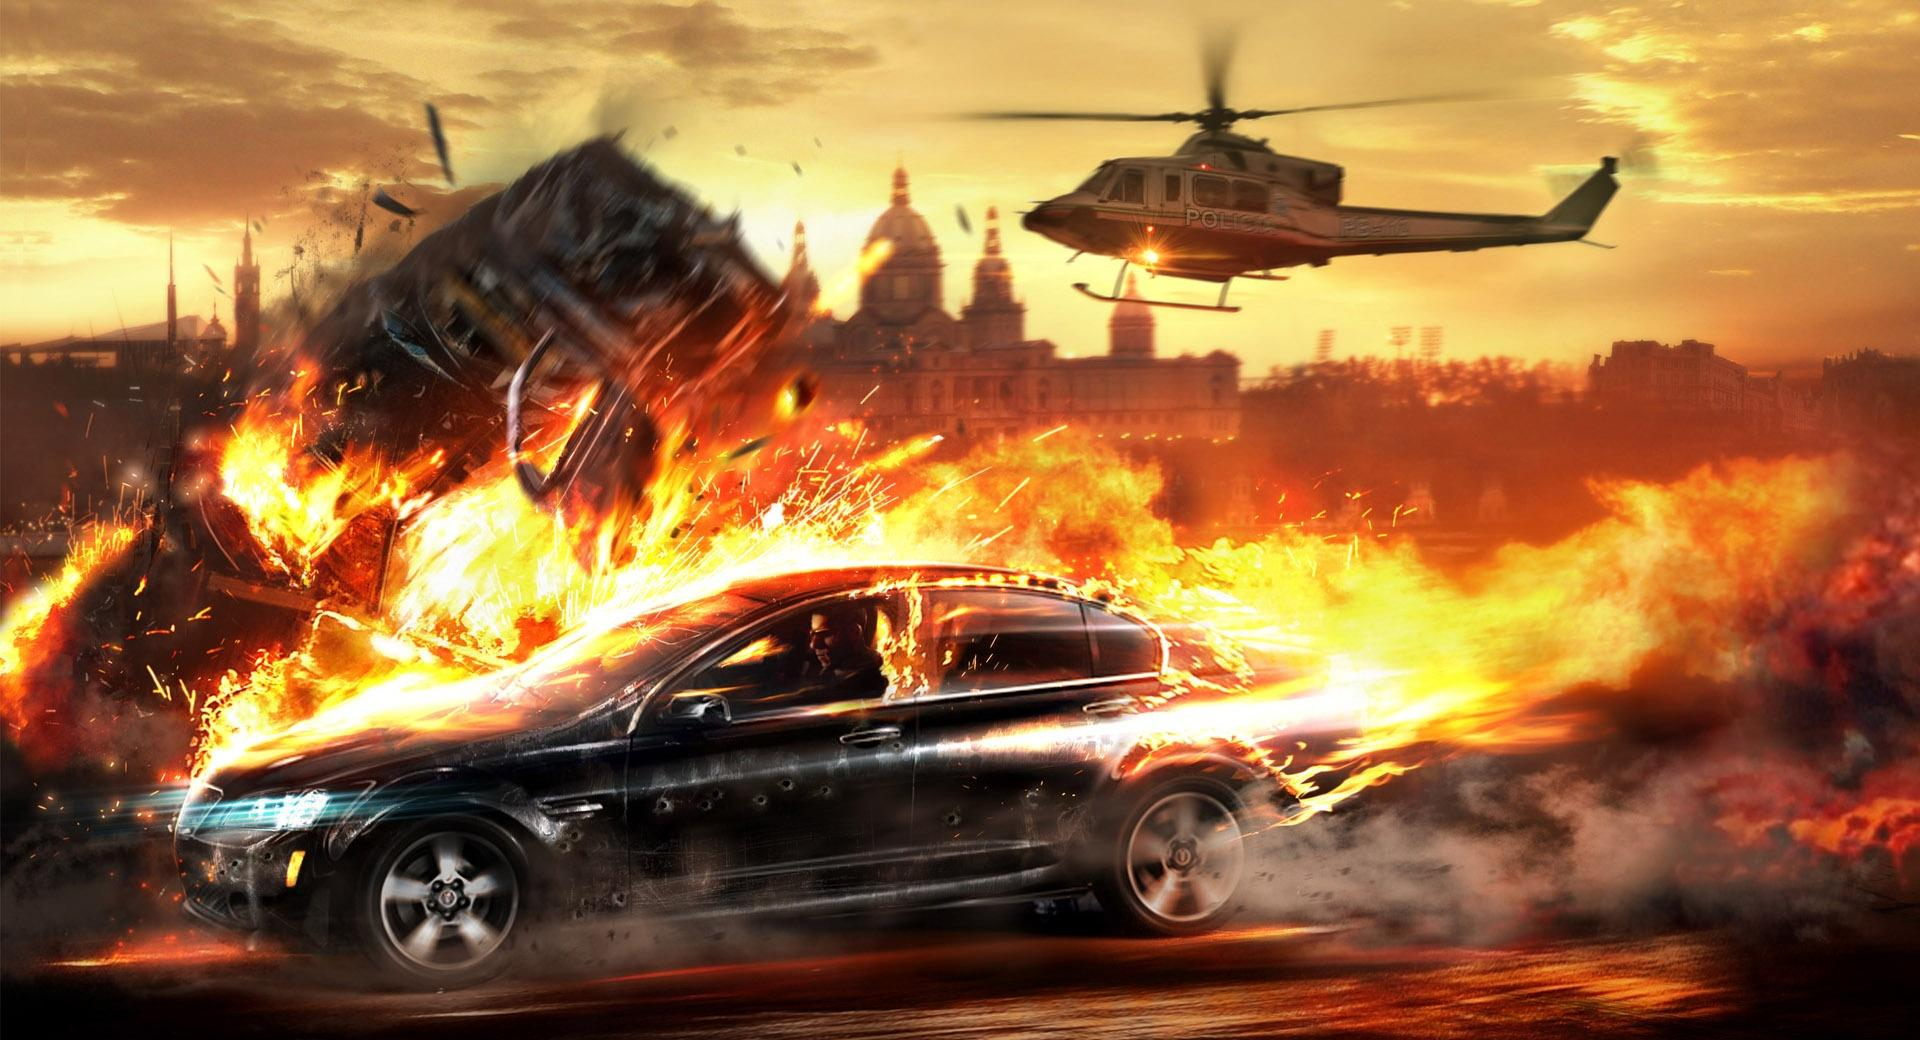 Car On Fire wallpapers HD quality